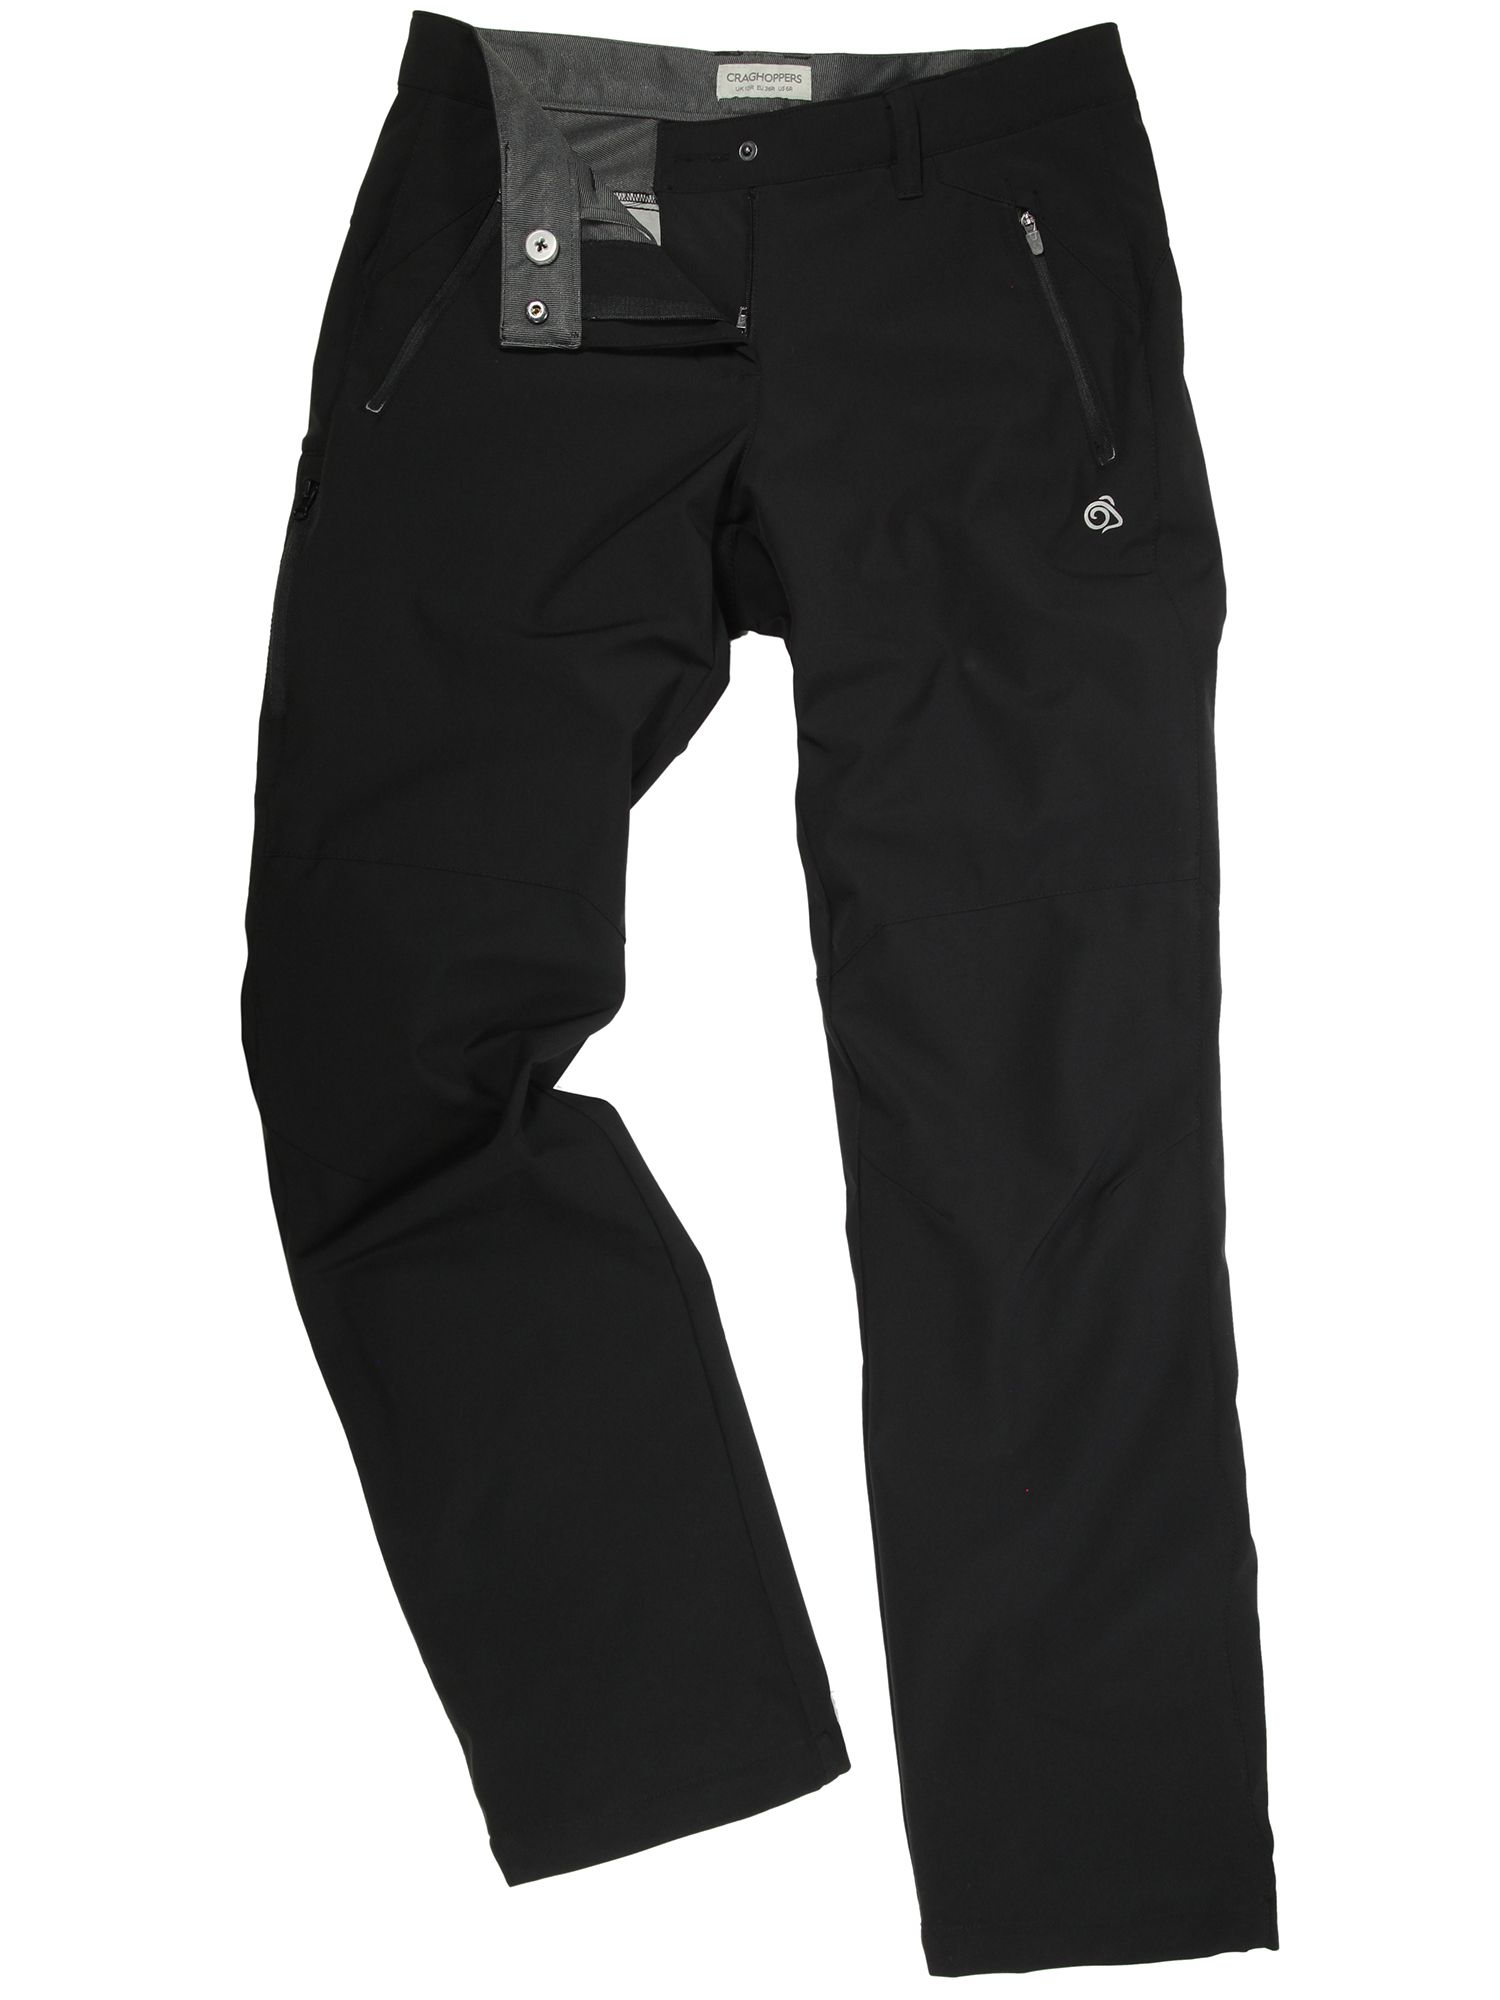 Craghoppers Kiwi Pro Trousers, Black